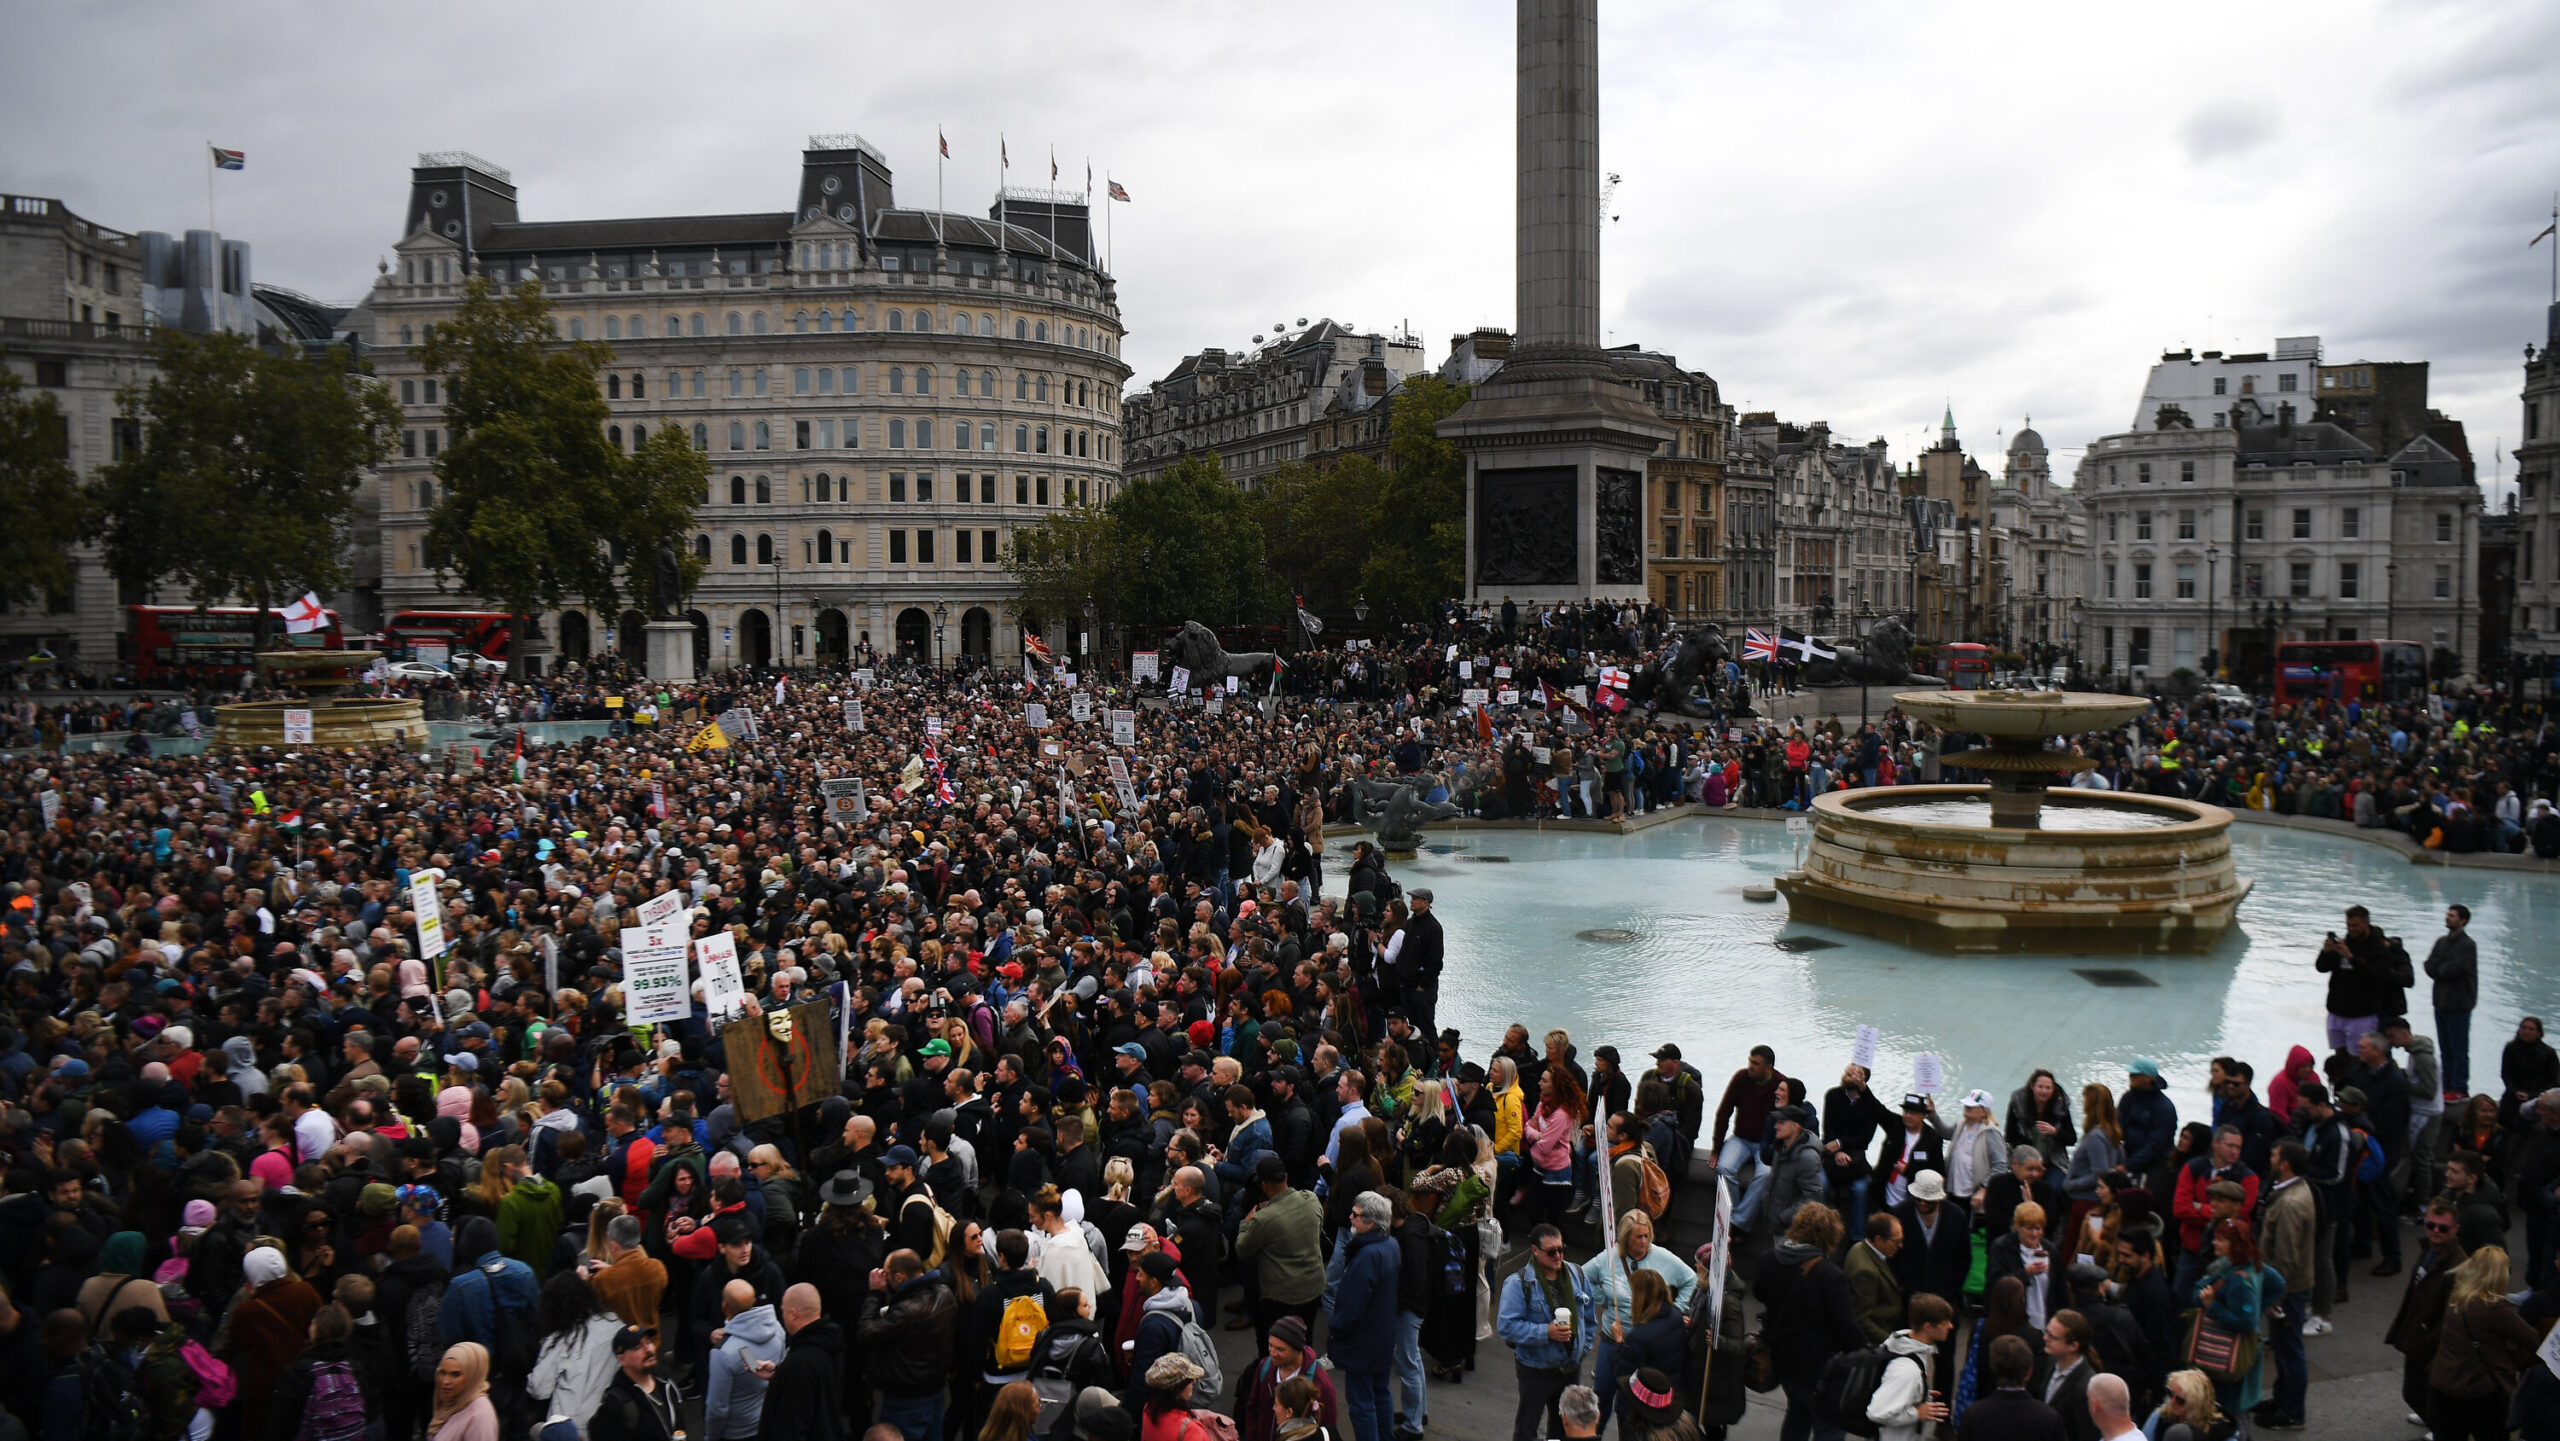 Covid-19 Live Updates: Thousands Protest Lockdown Measures in London